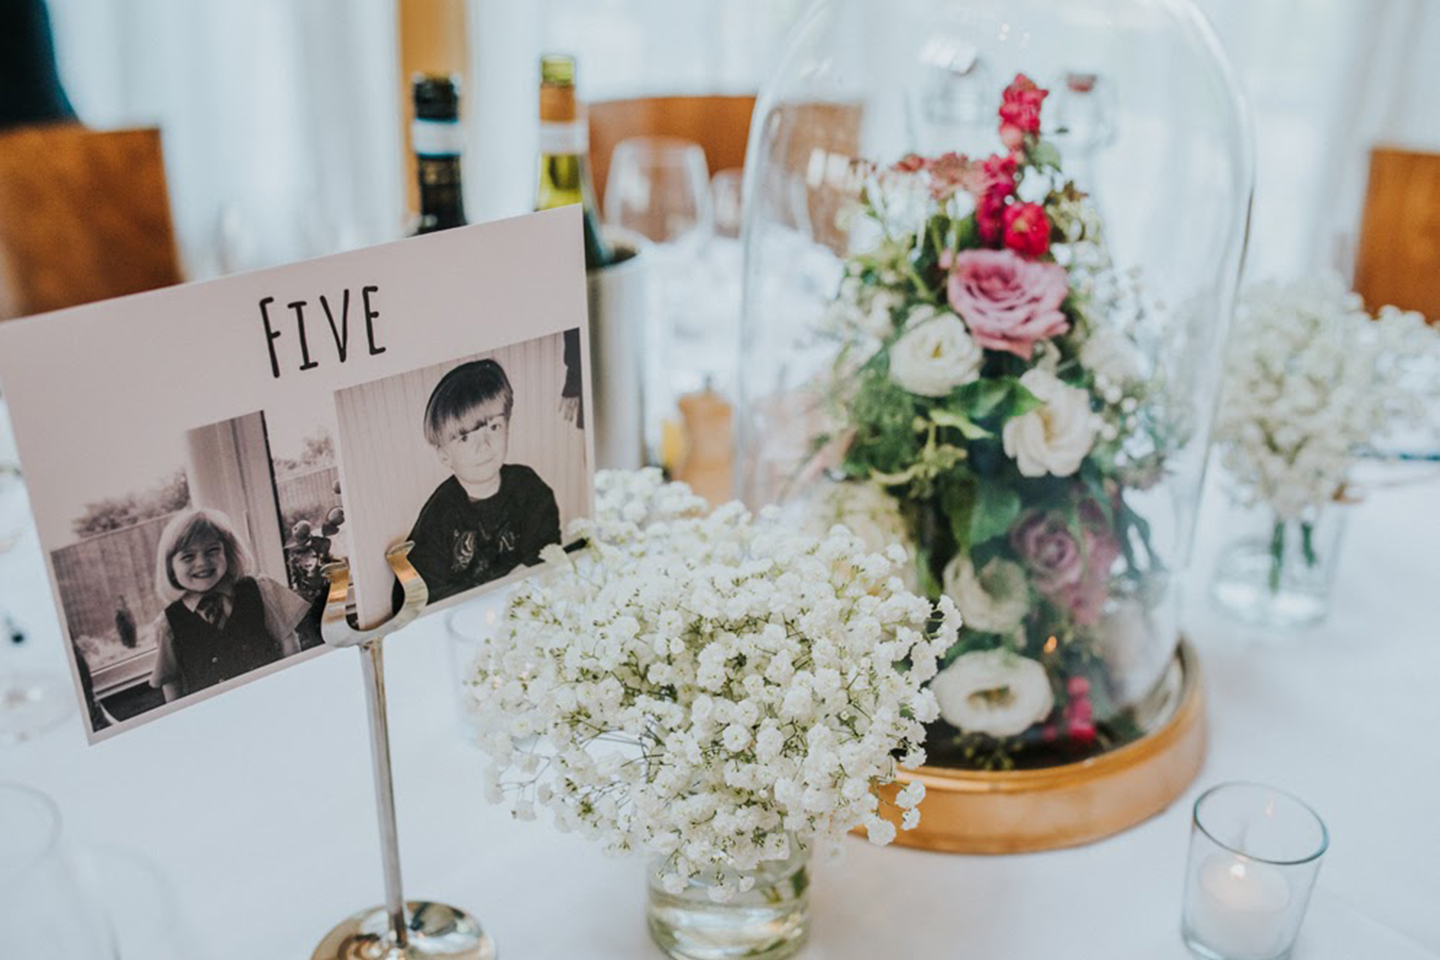 The couple used baby photographs as their table numbers during their wedding reception at Bassmead Manor Barns